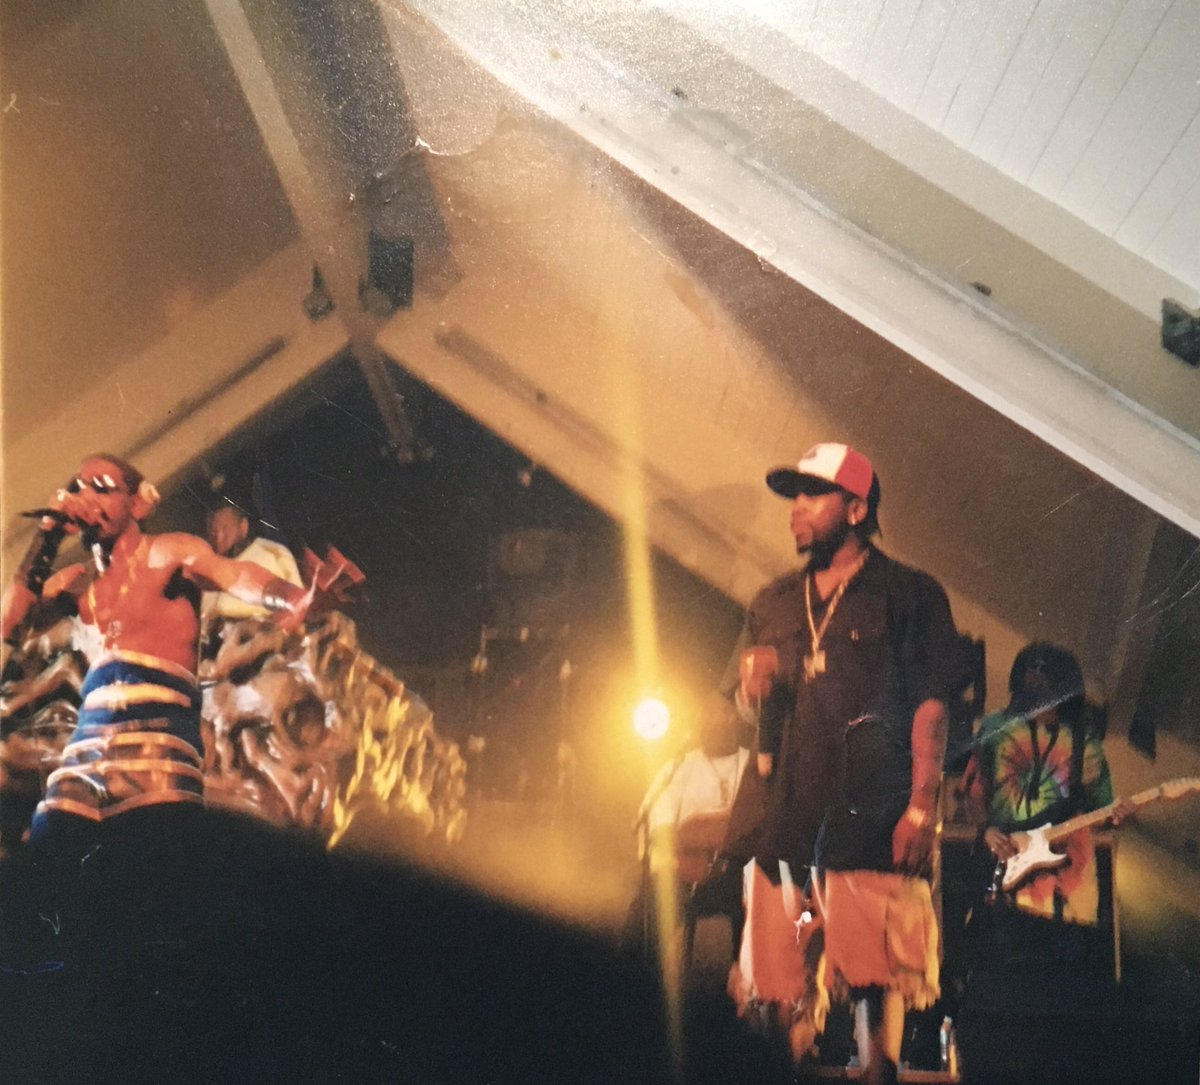 #TBT April 12, 2001 - Some little known acts by the names of @Outkast, @Ludacris, and @TheRoots performed a free show at the @UF Bandshell! (It was WILD!!!) And I crossed paths with Luda afterwards! Something I've yet to do since living in the ATL. 🤔